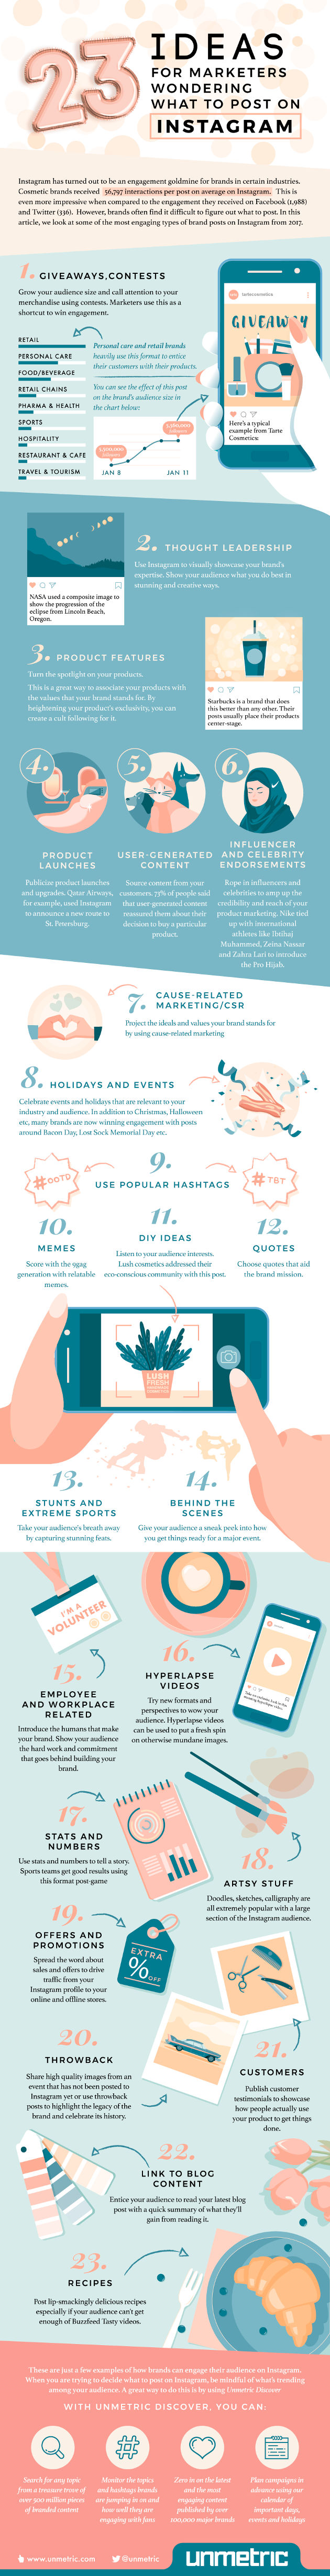 23 Instagram Ideas for Marketers